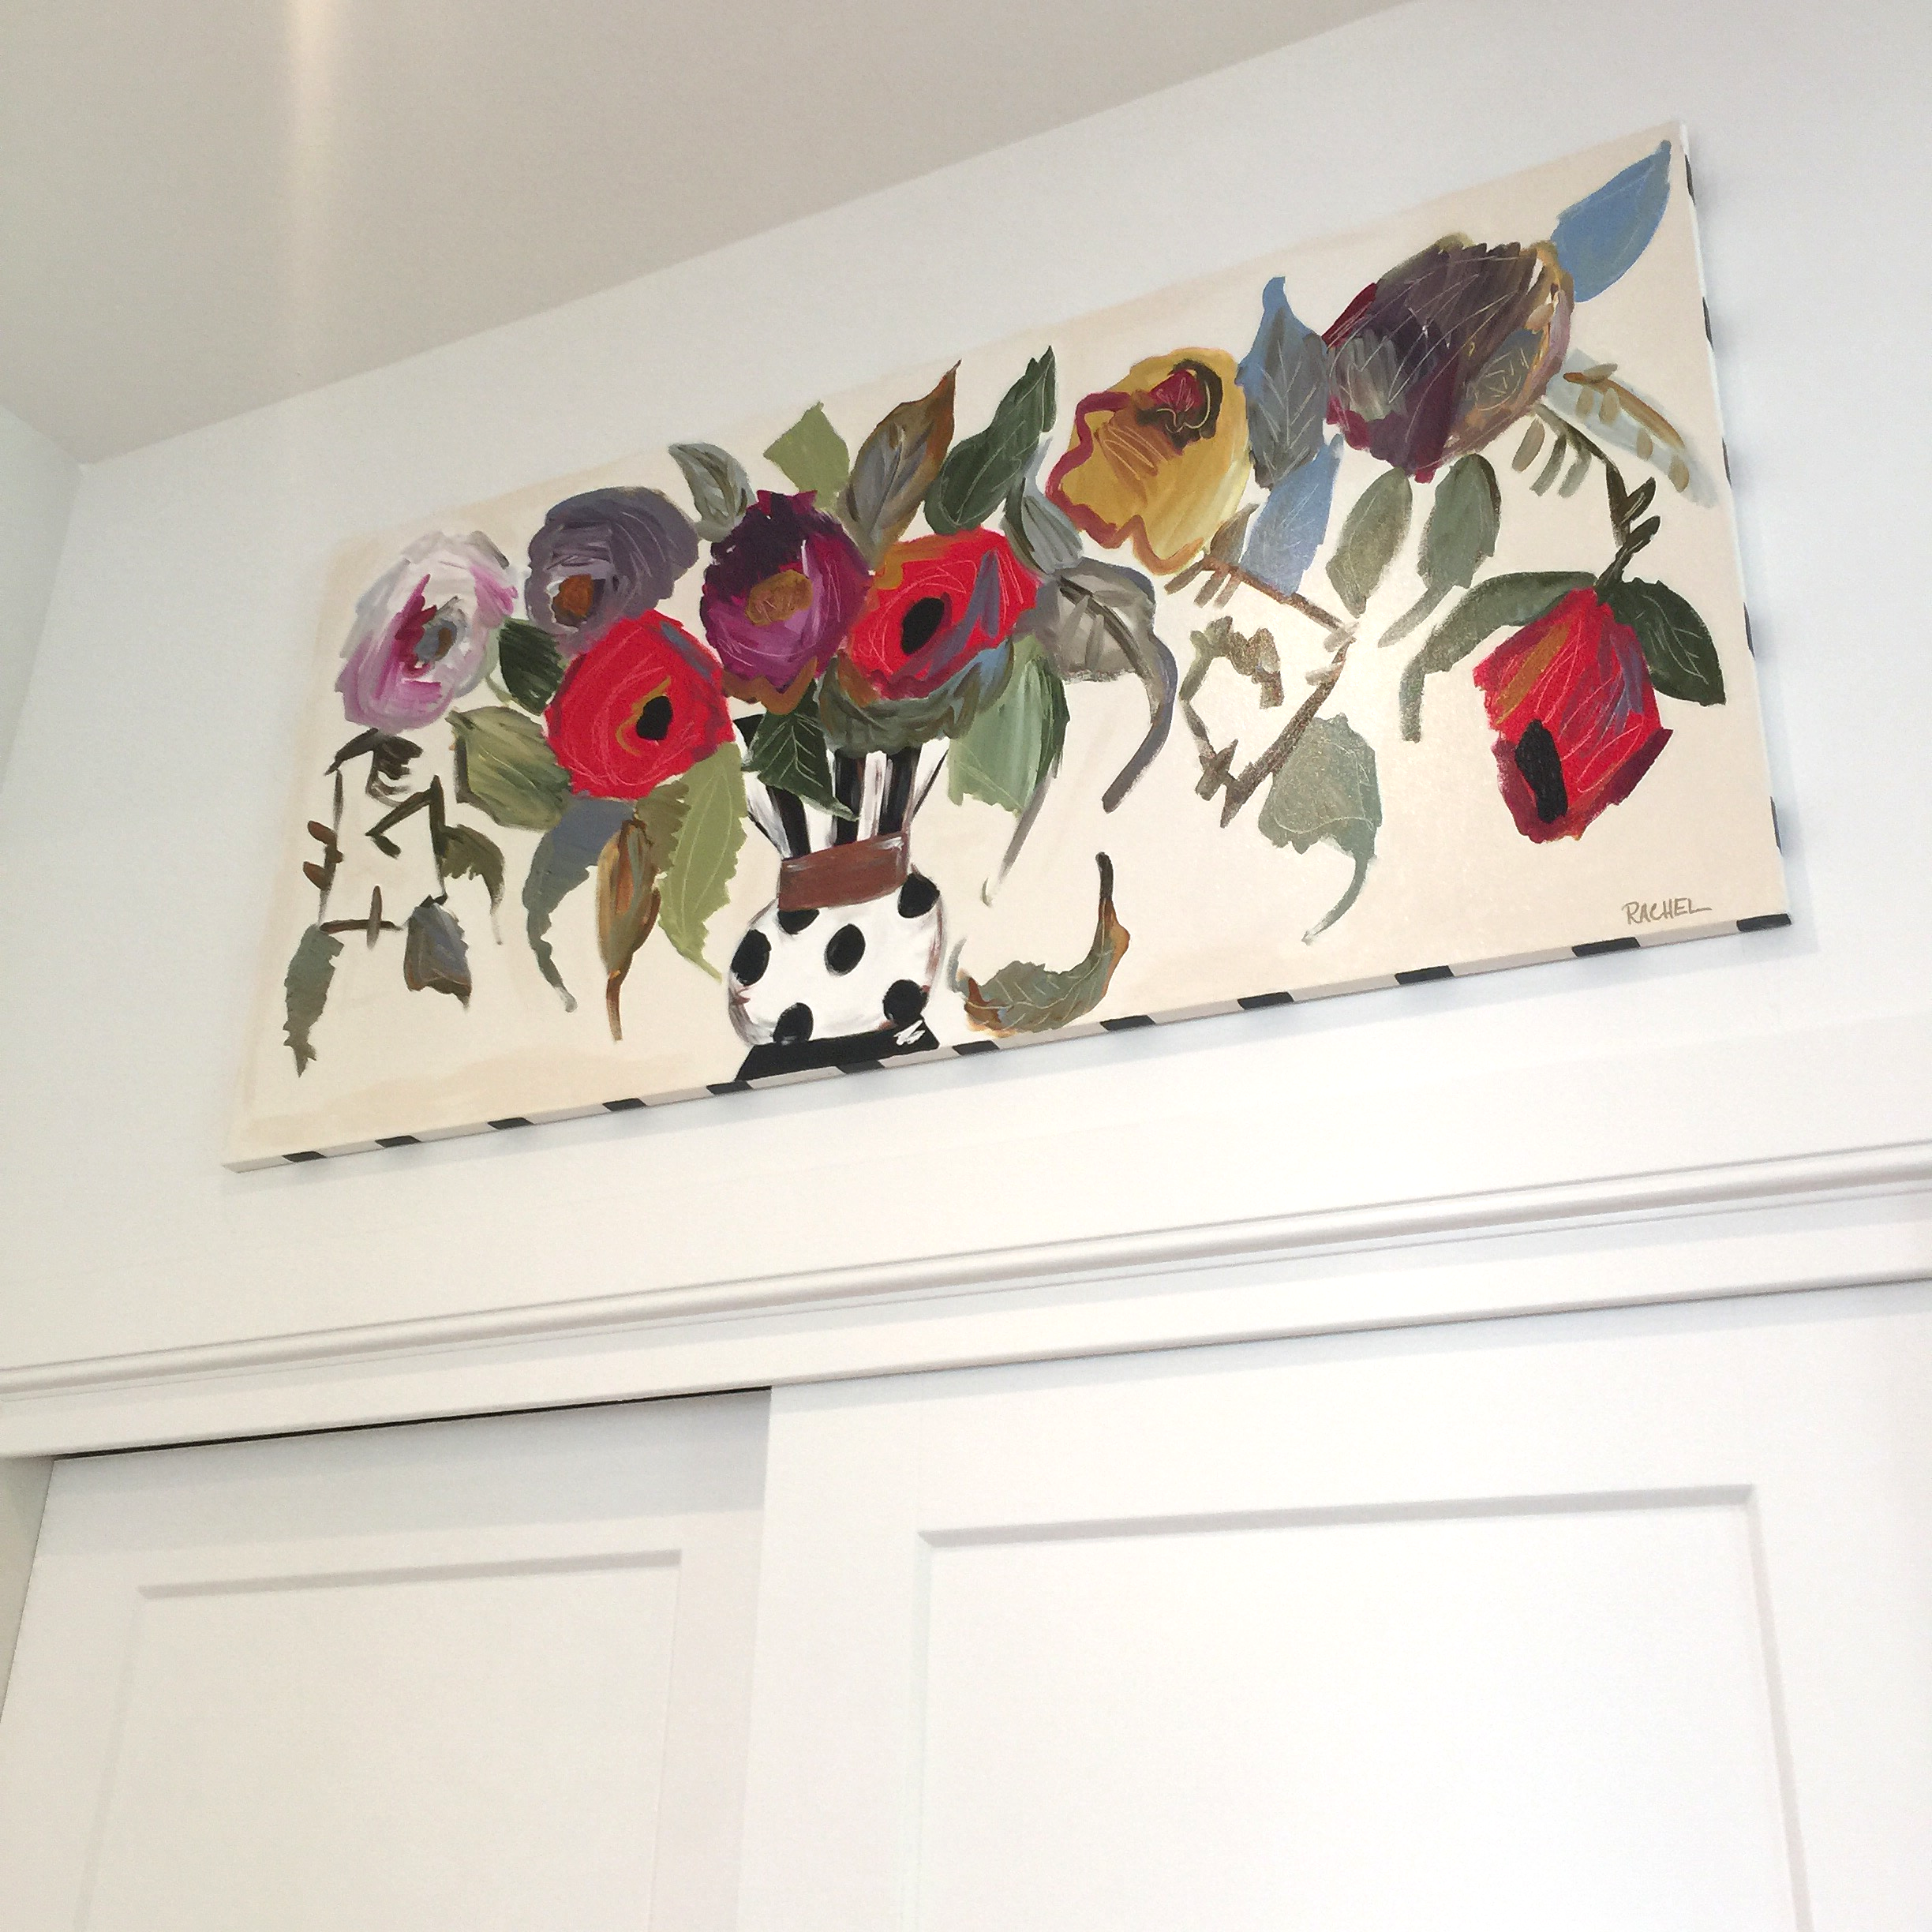 Here is another original painting of mine on display at Homearama!